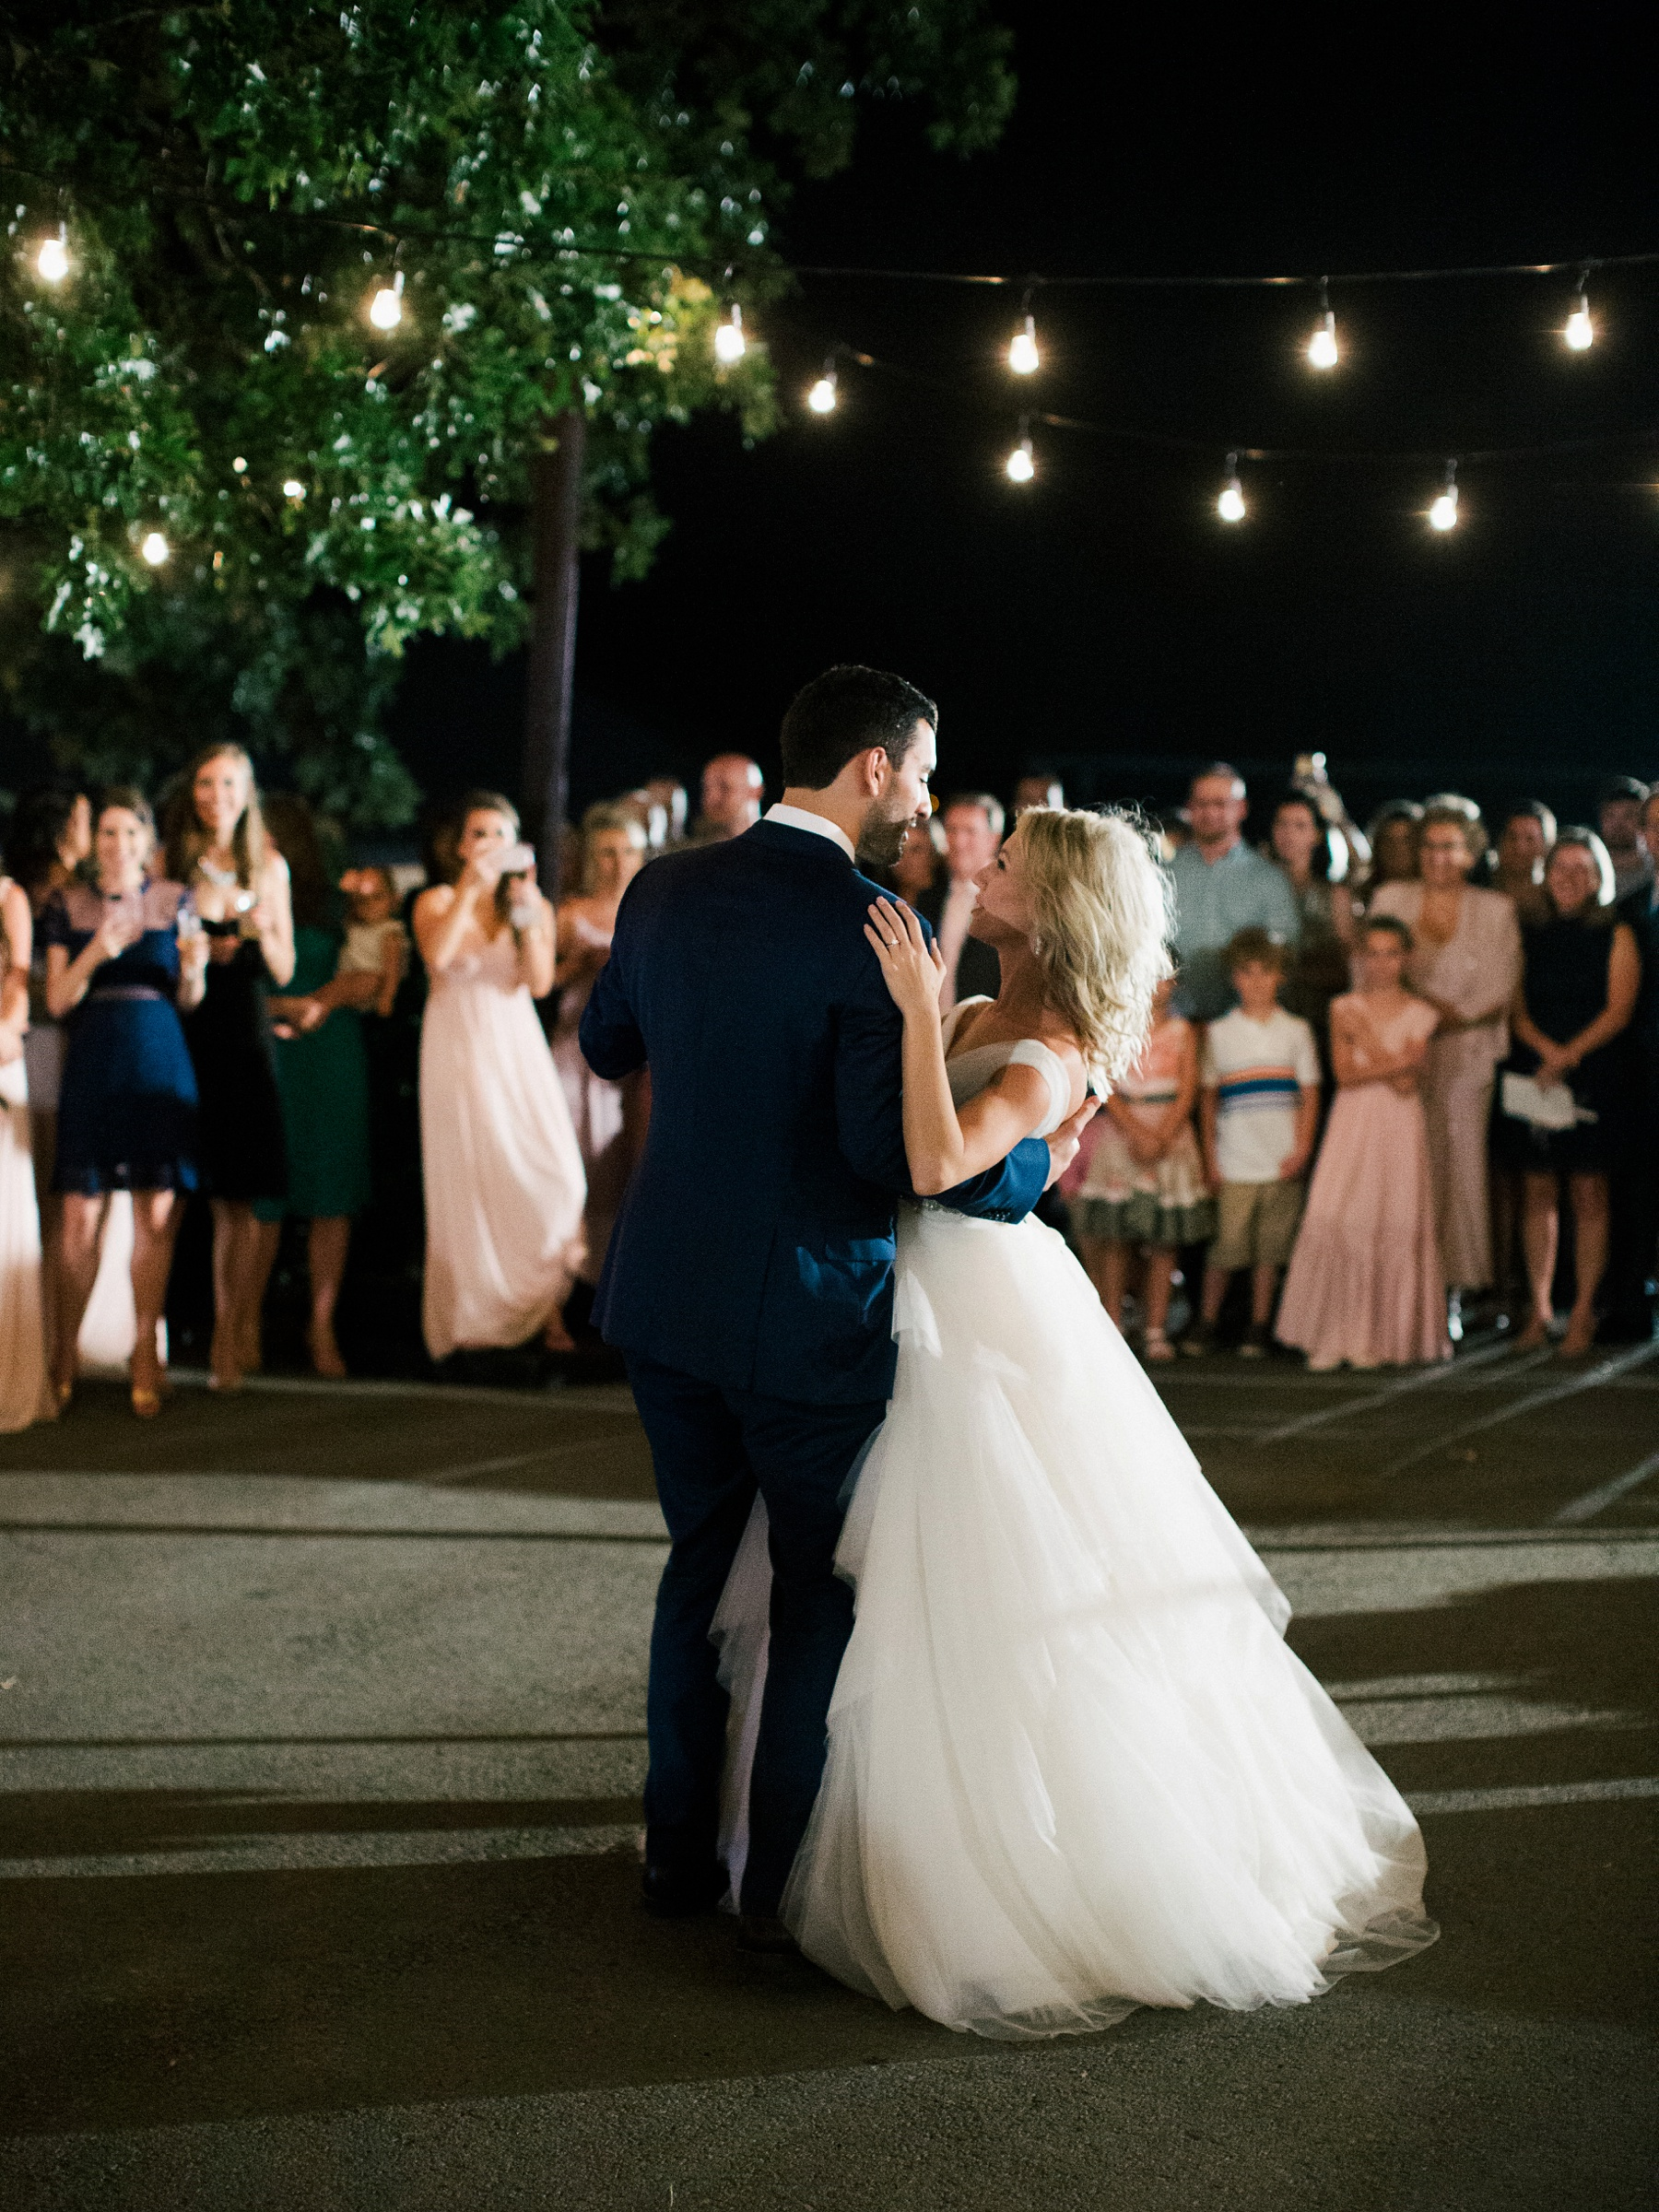 CMT Music City Jessica Mack and Andreas Plackis Wedding_1556.jpg